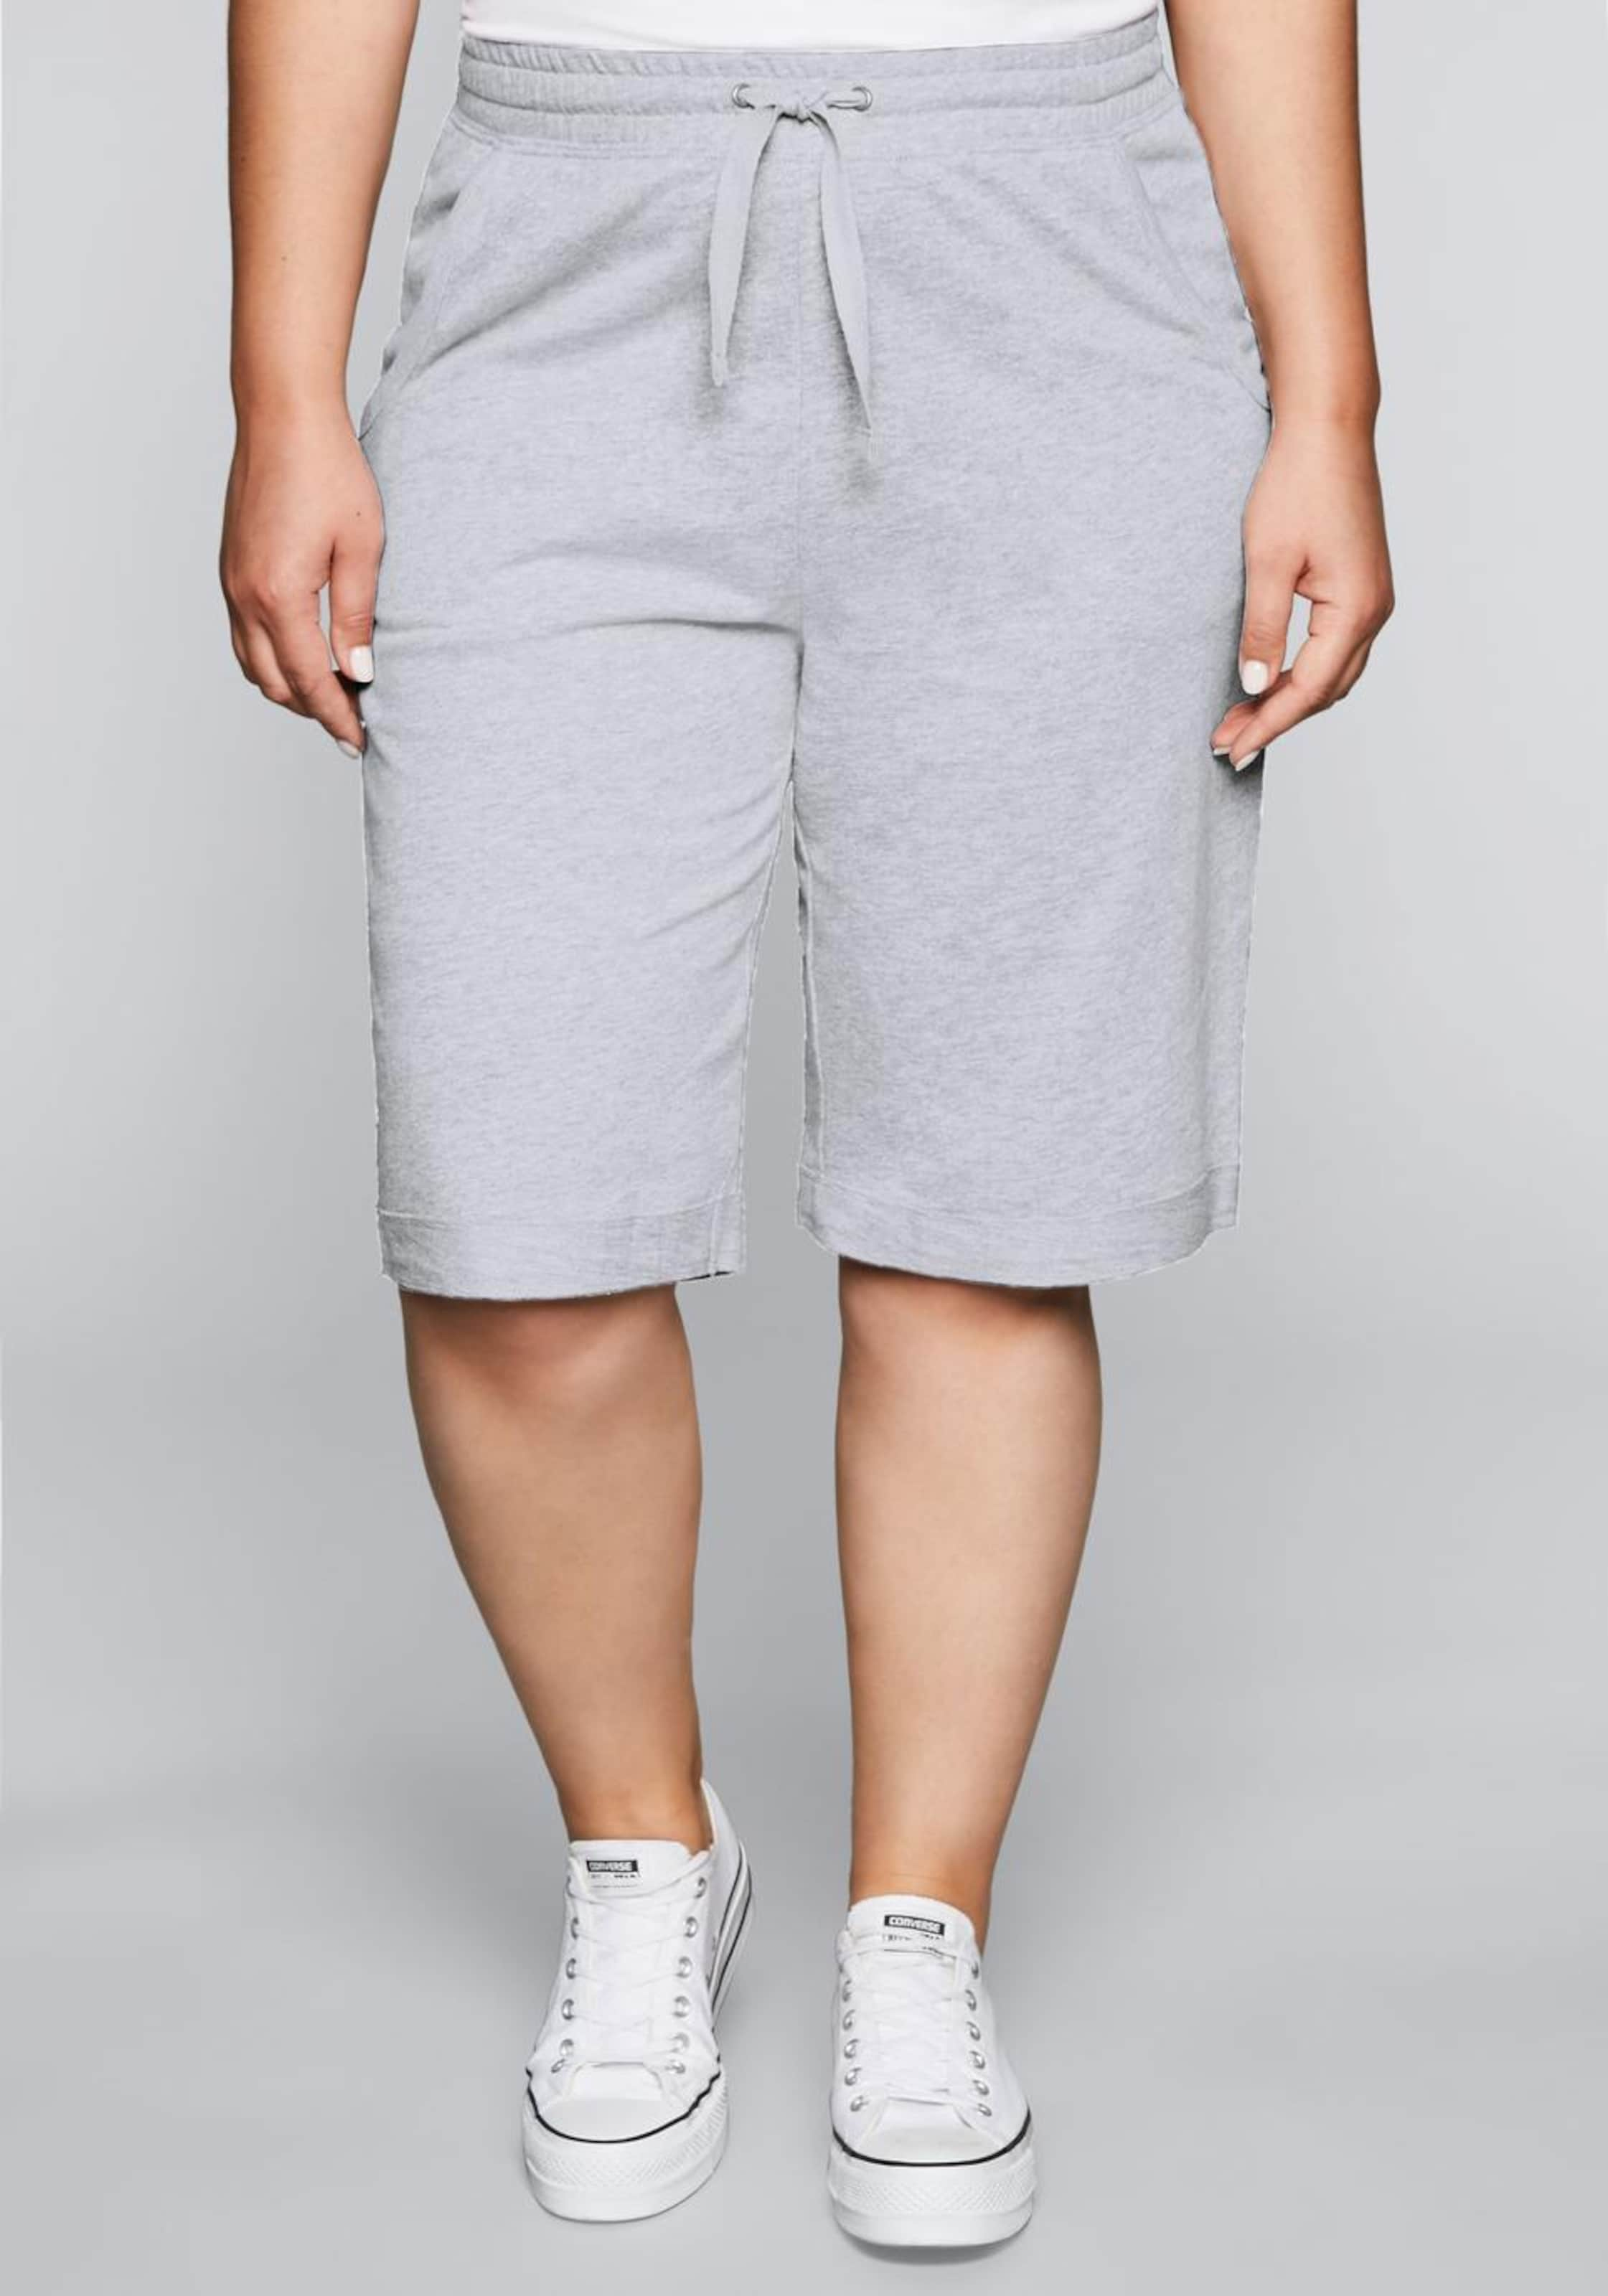 In Bermudas Grau Sheego Casual Sheego Casual Bermudas 0wOvN8mn